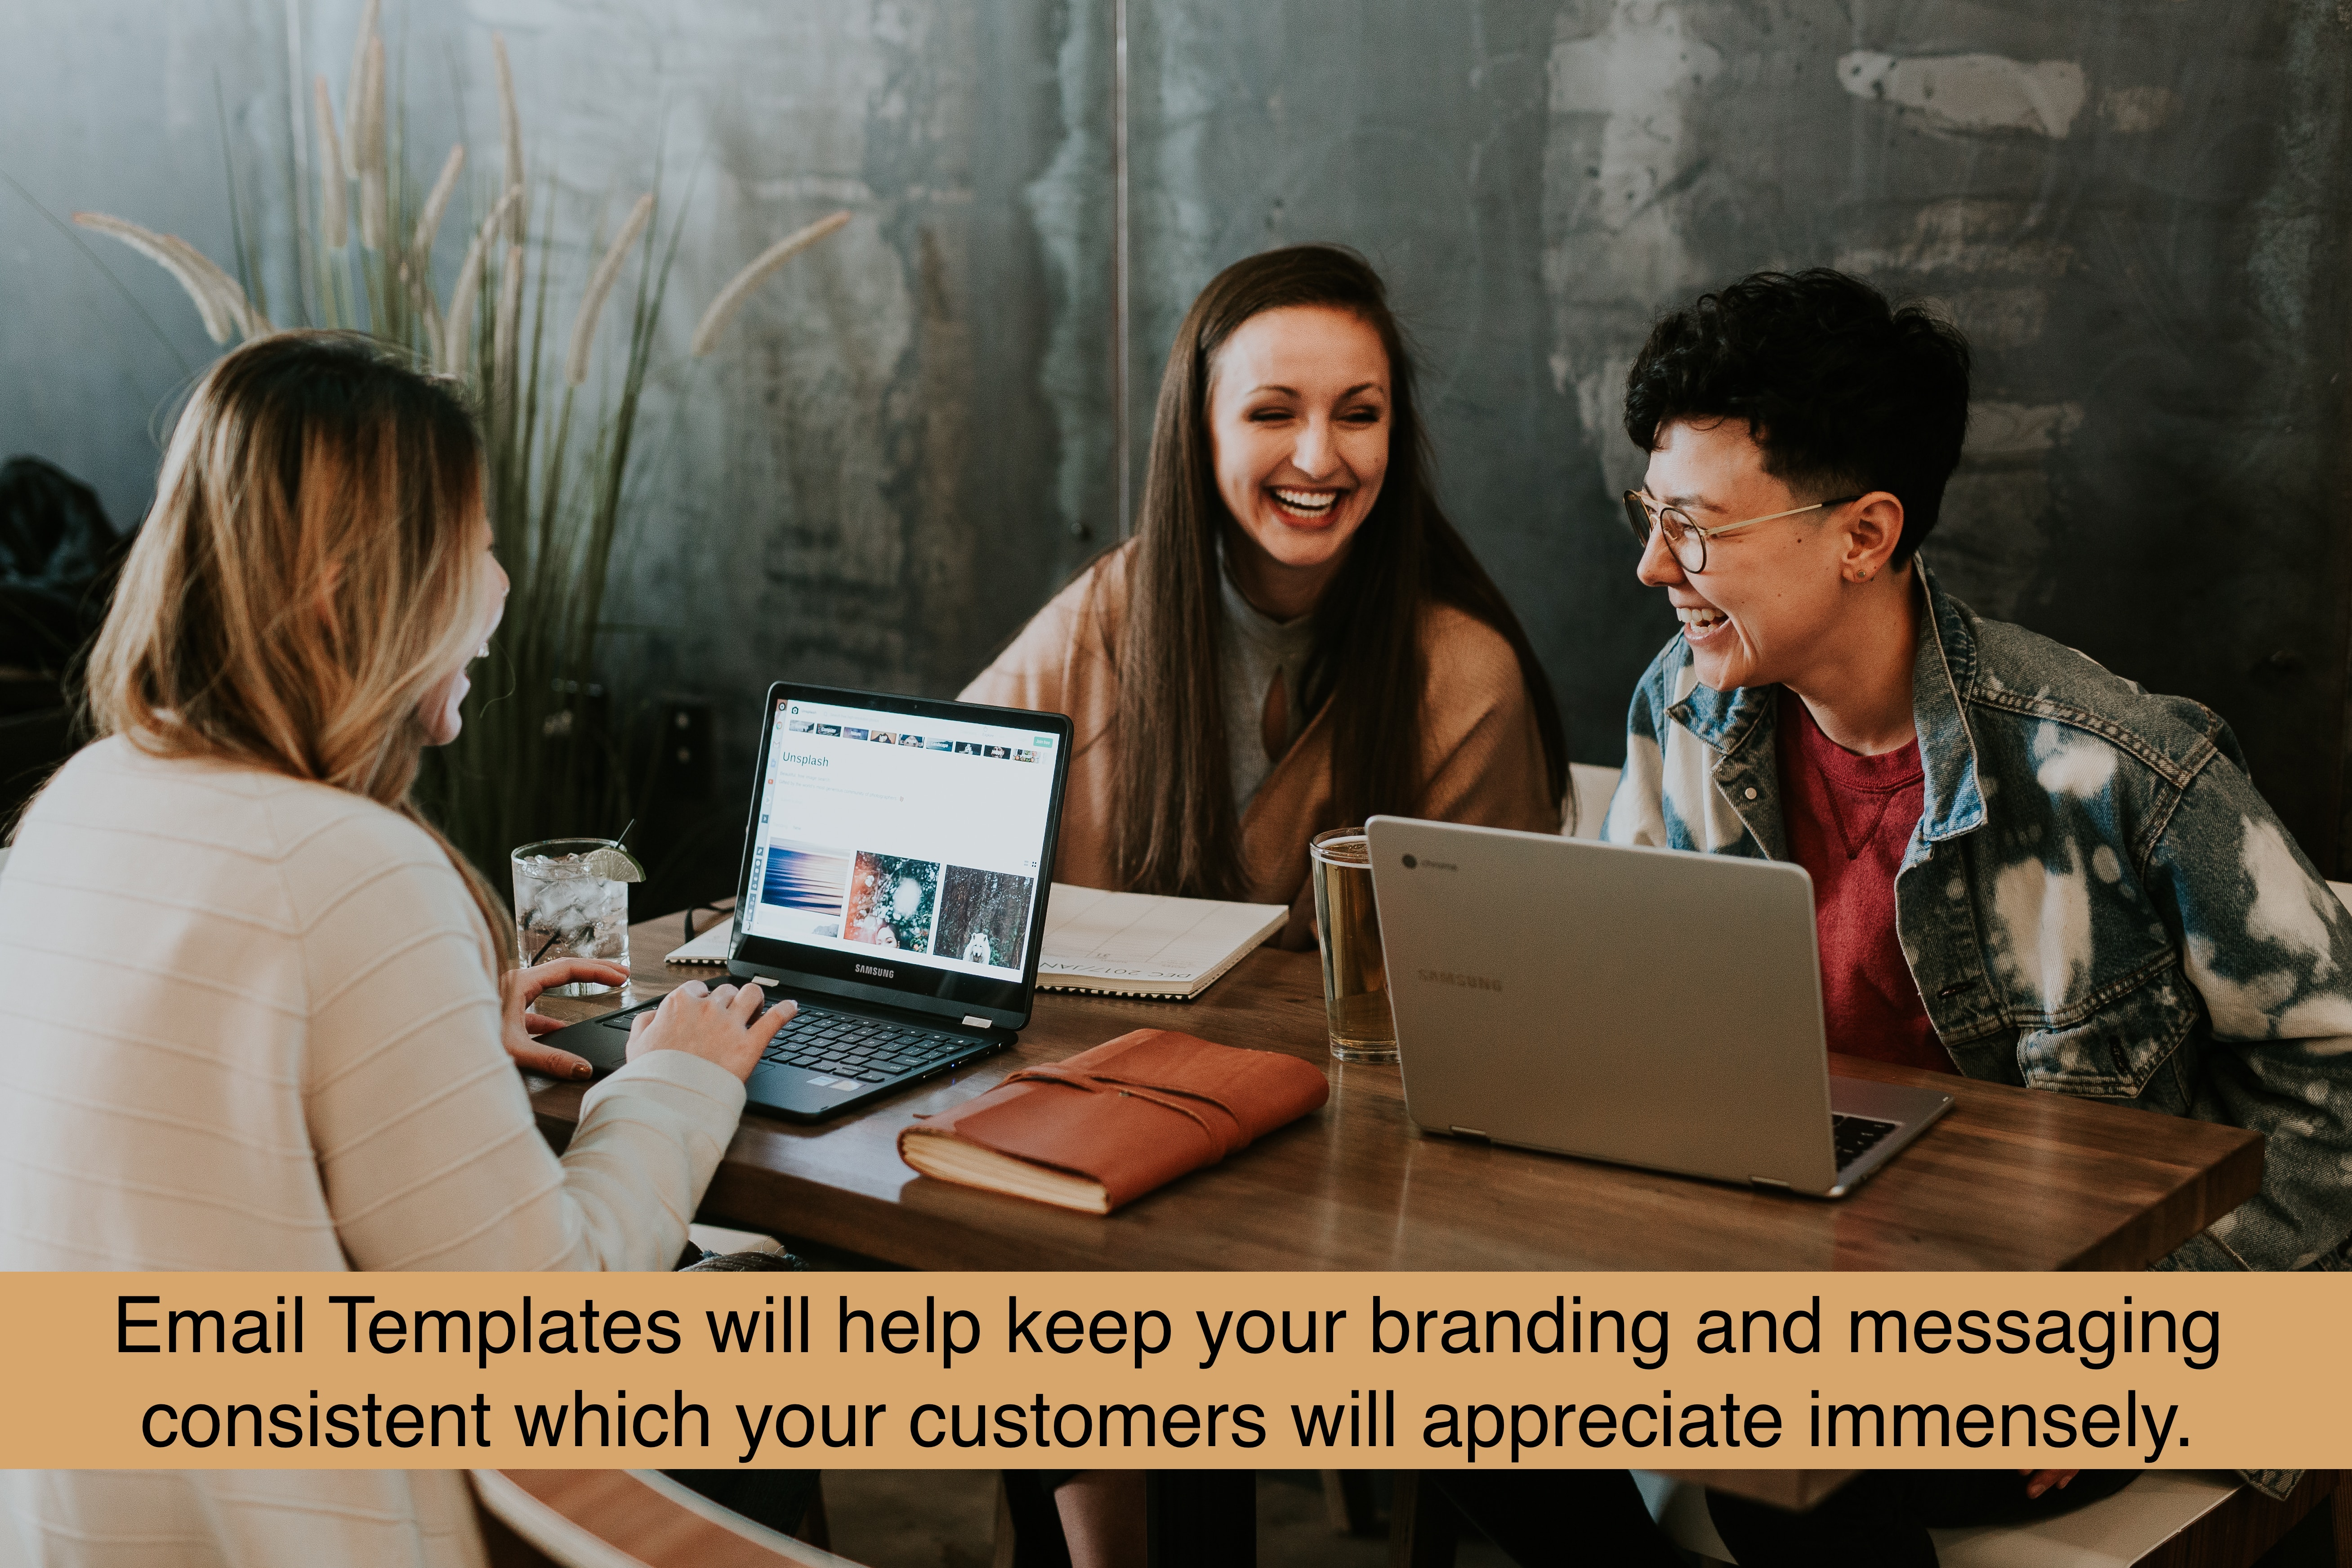 Email Templates will help keep your branding and messaging consistent which your customers will appreciate immensely.